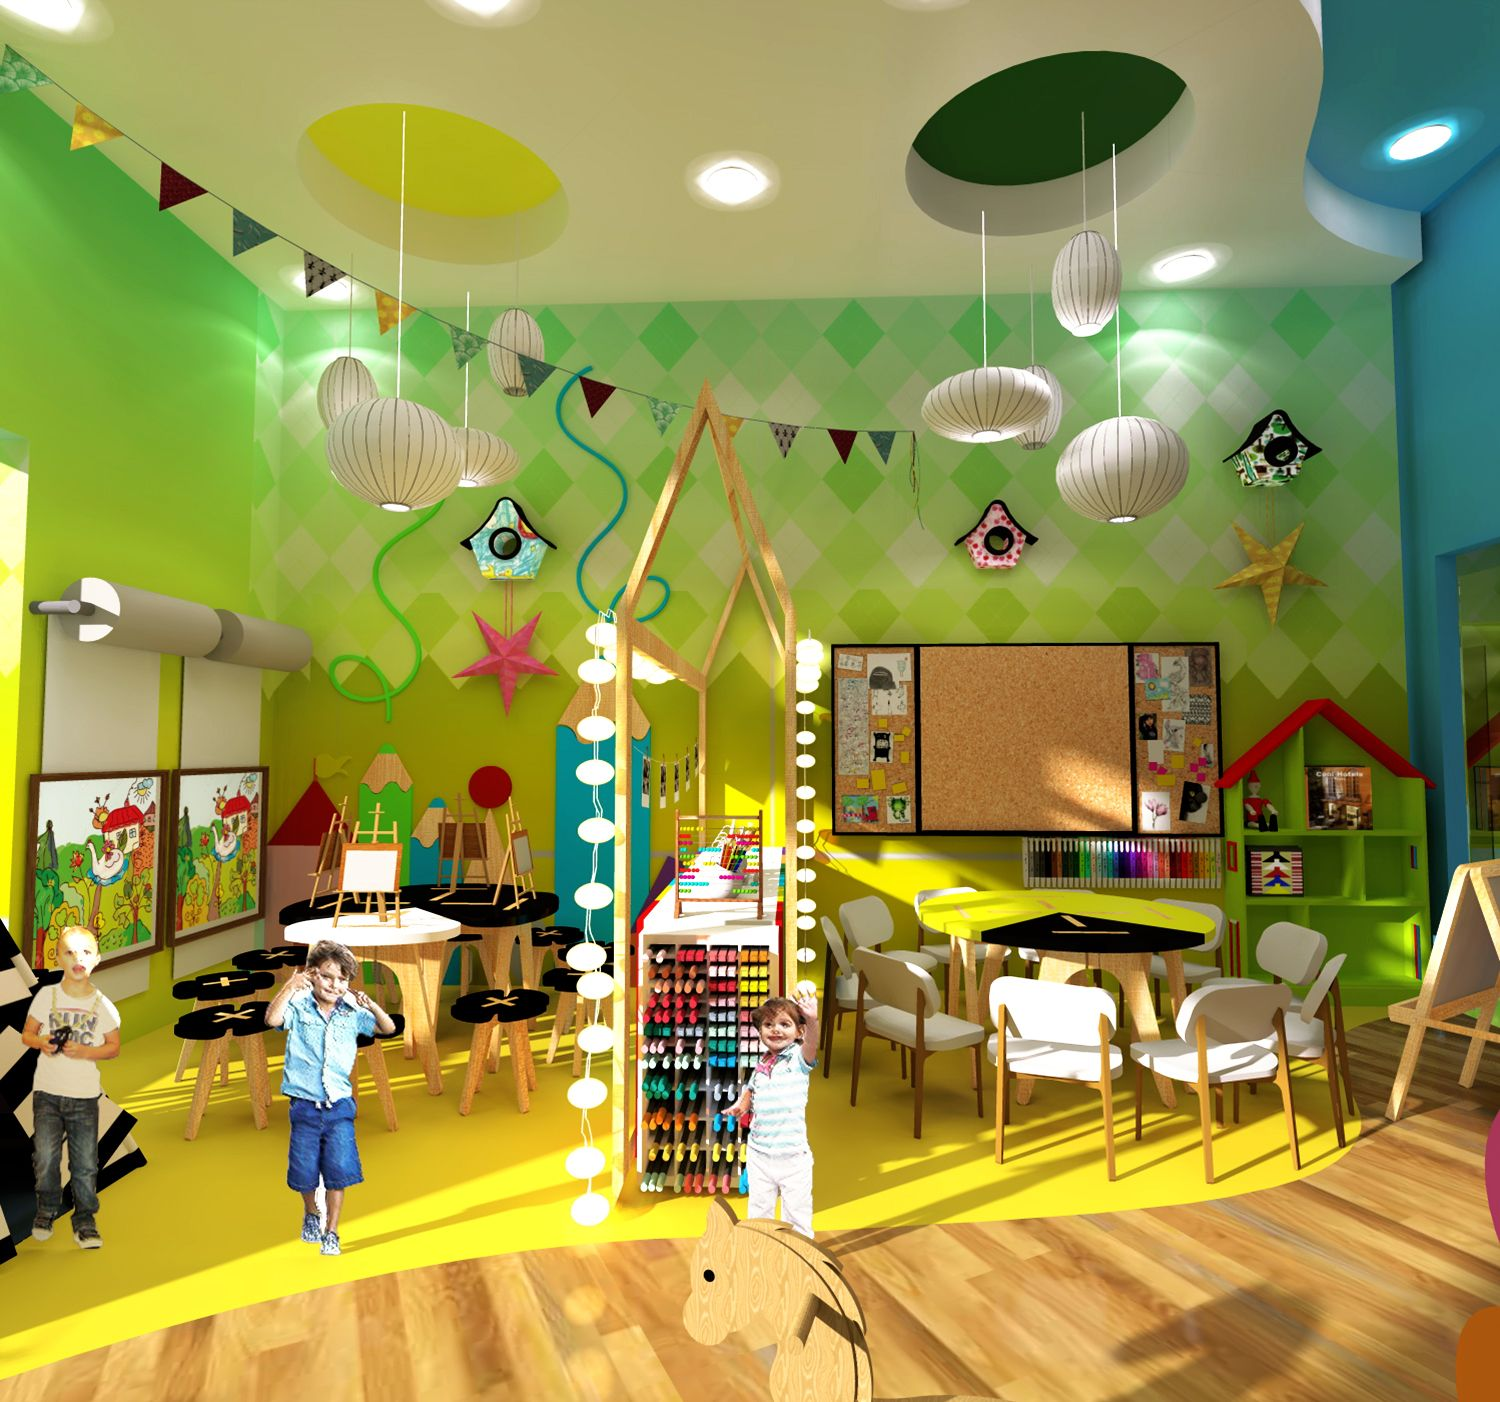 Colorful Playroom Design: Kindergarten Playroom Design